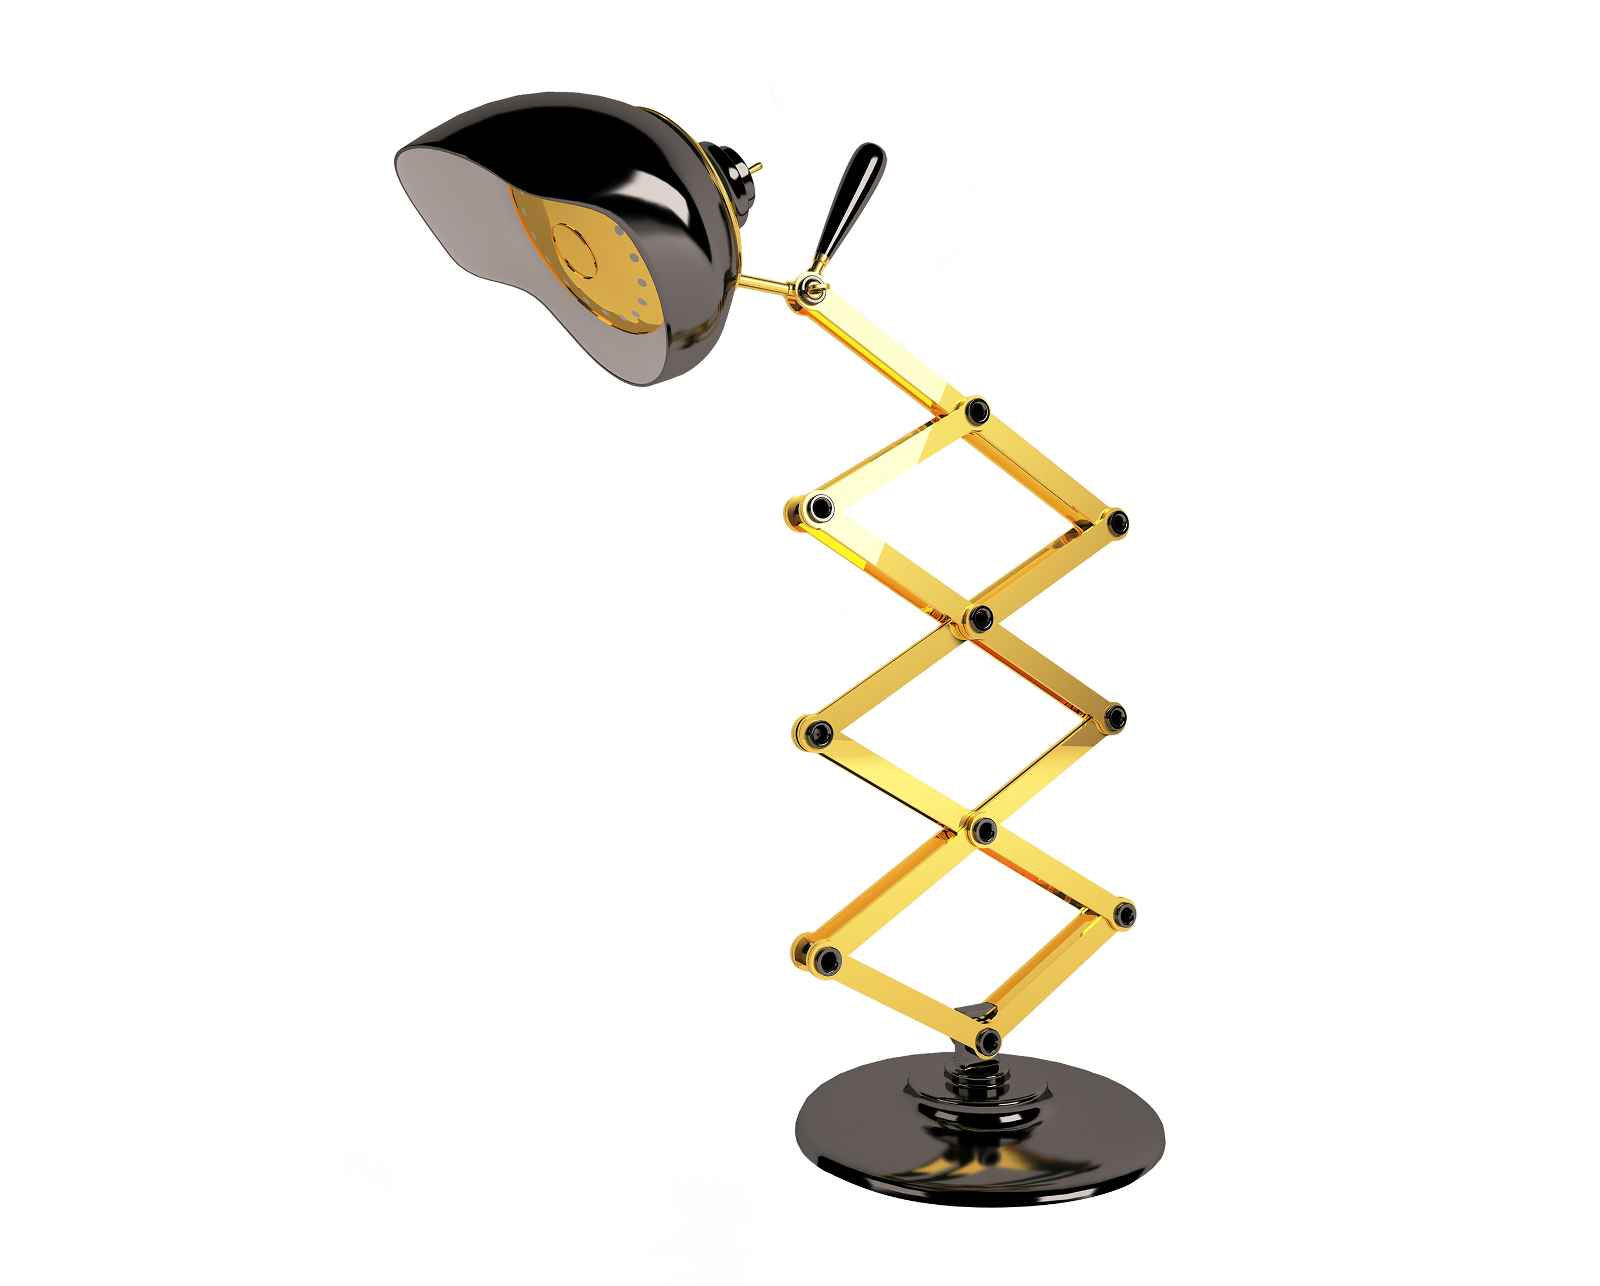 Luxurious home office desk lamp in retro design